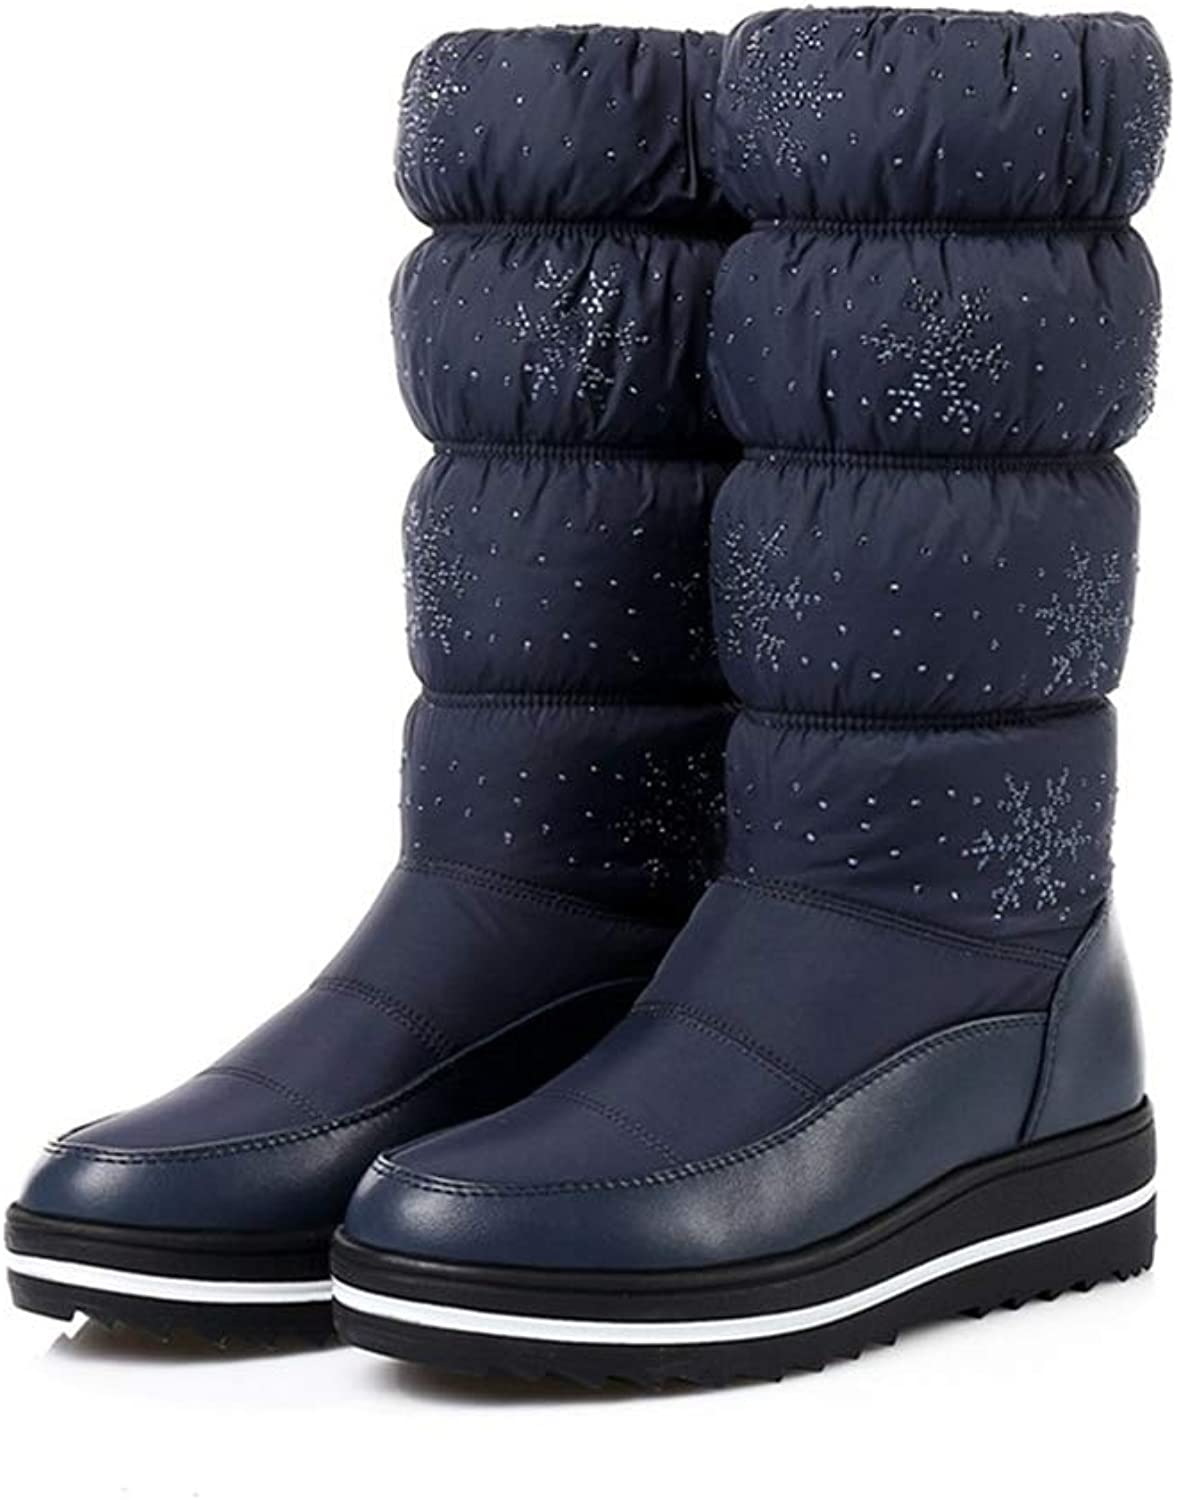 Hoxekle Women Mid Calf Snow Boot Thick Cotton Waterproof Round Toe Flat Black bluee Female Outdoor Long Boots